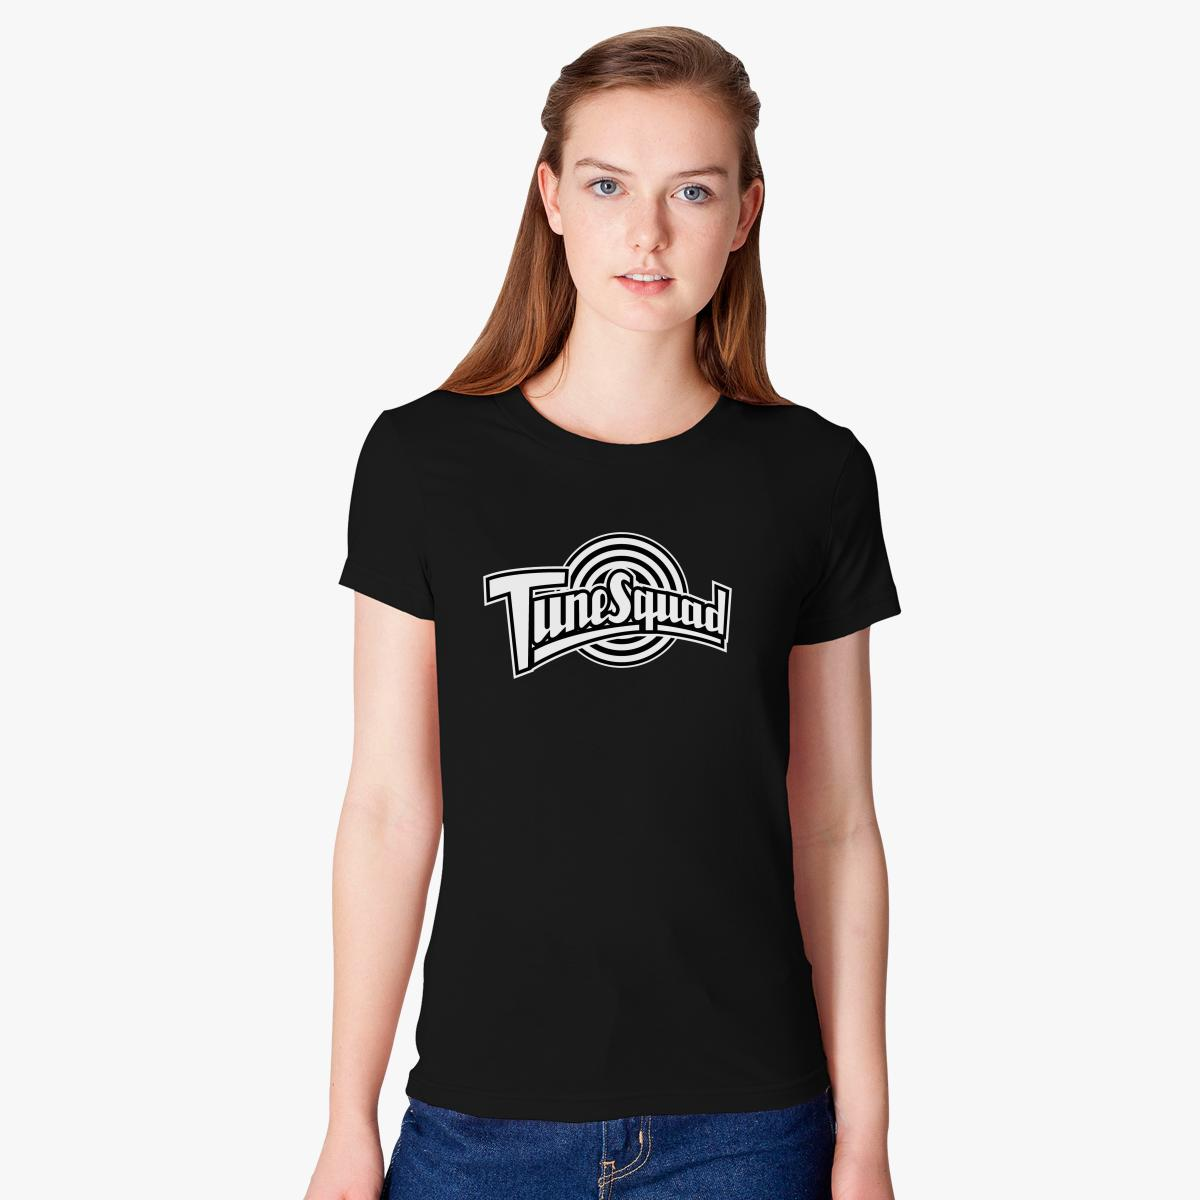 f0bf913556babe Space Jam Tune Squad Shirts